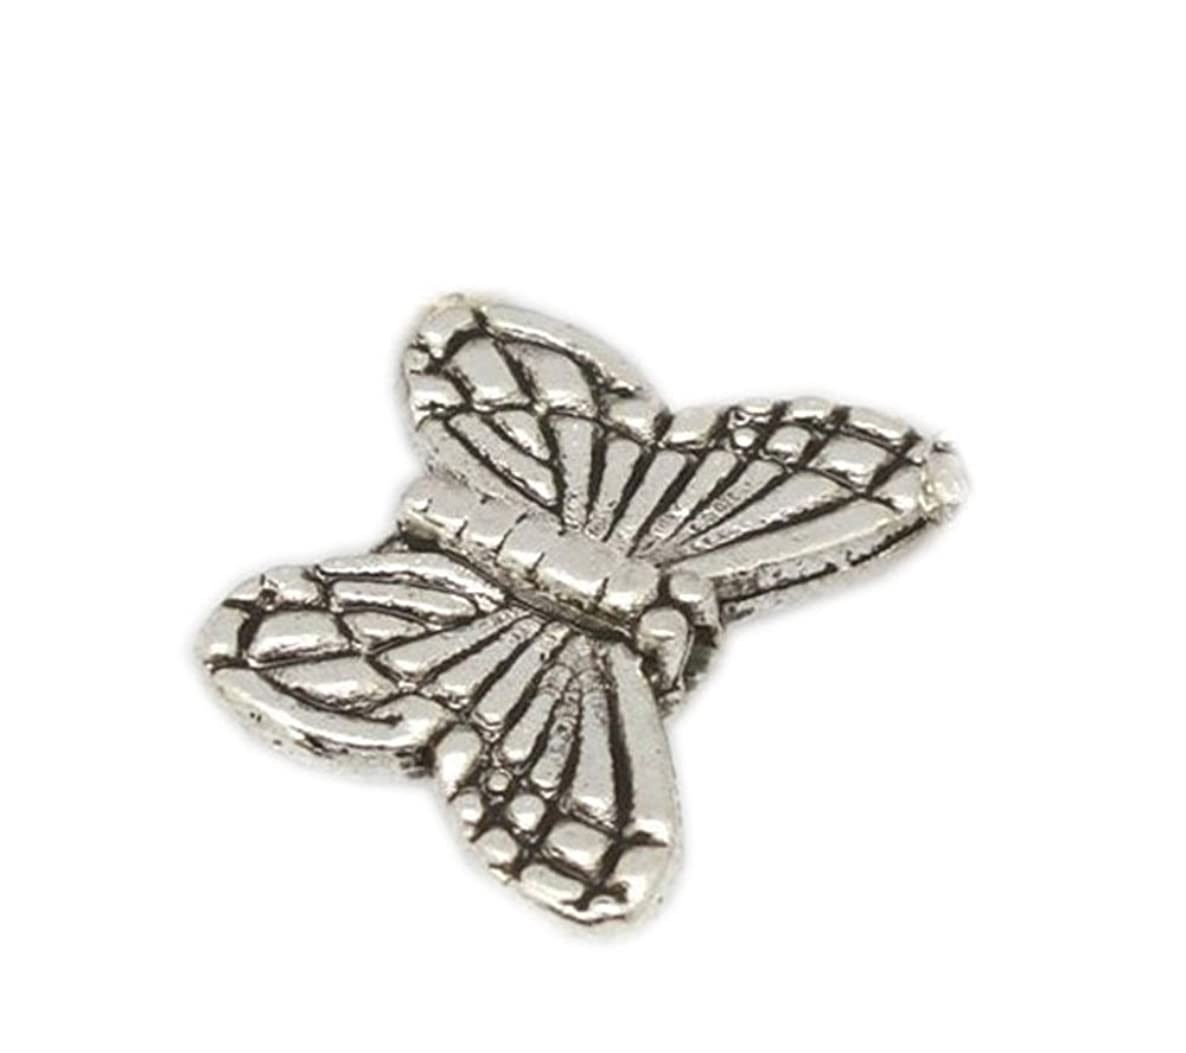 GBSTORE 50 Pcs Tibetan Silver Butterfly Spacer Charm Beads 10mm